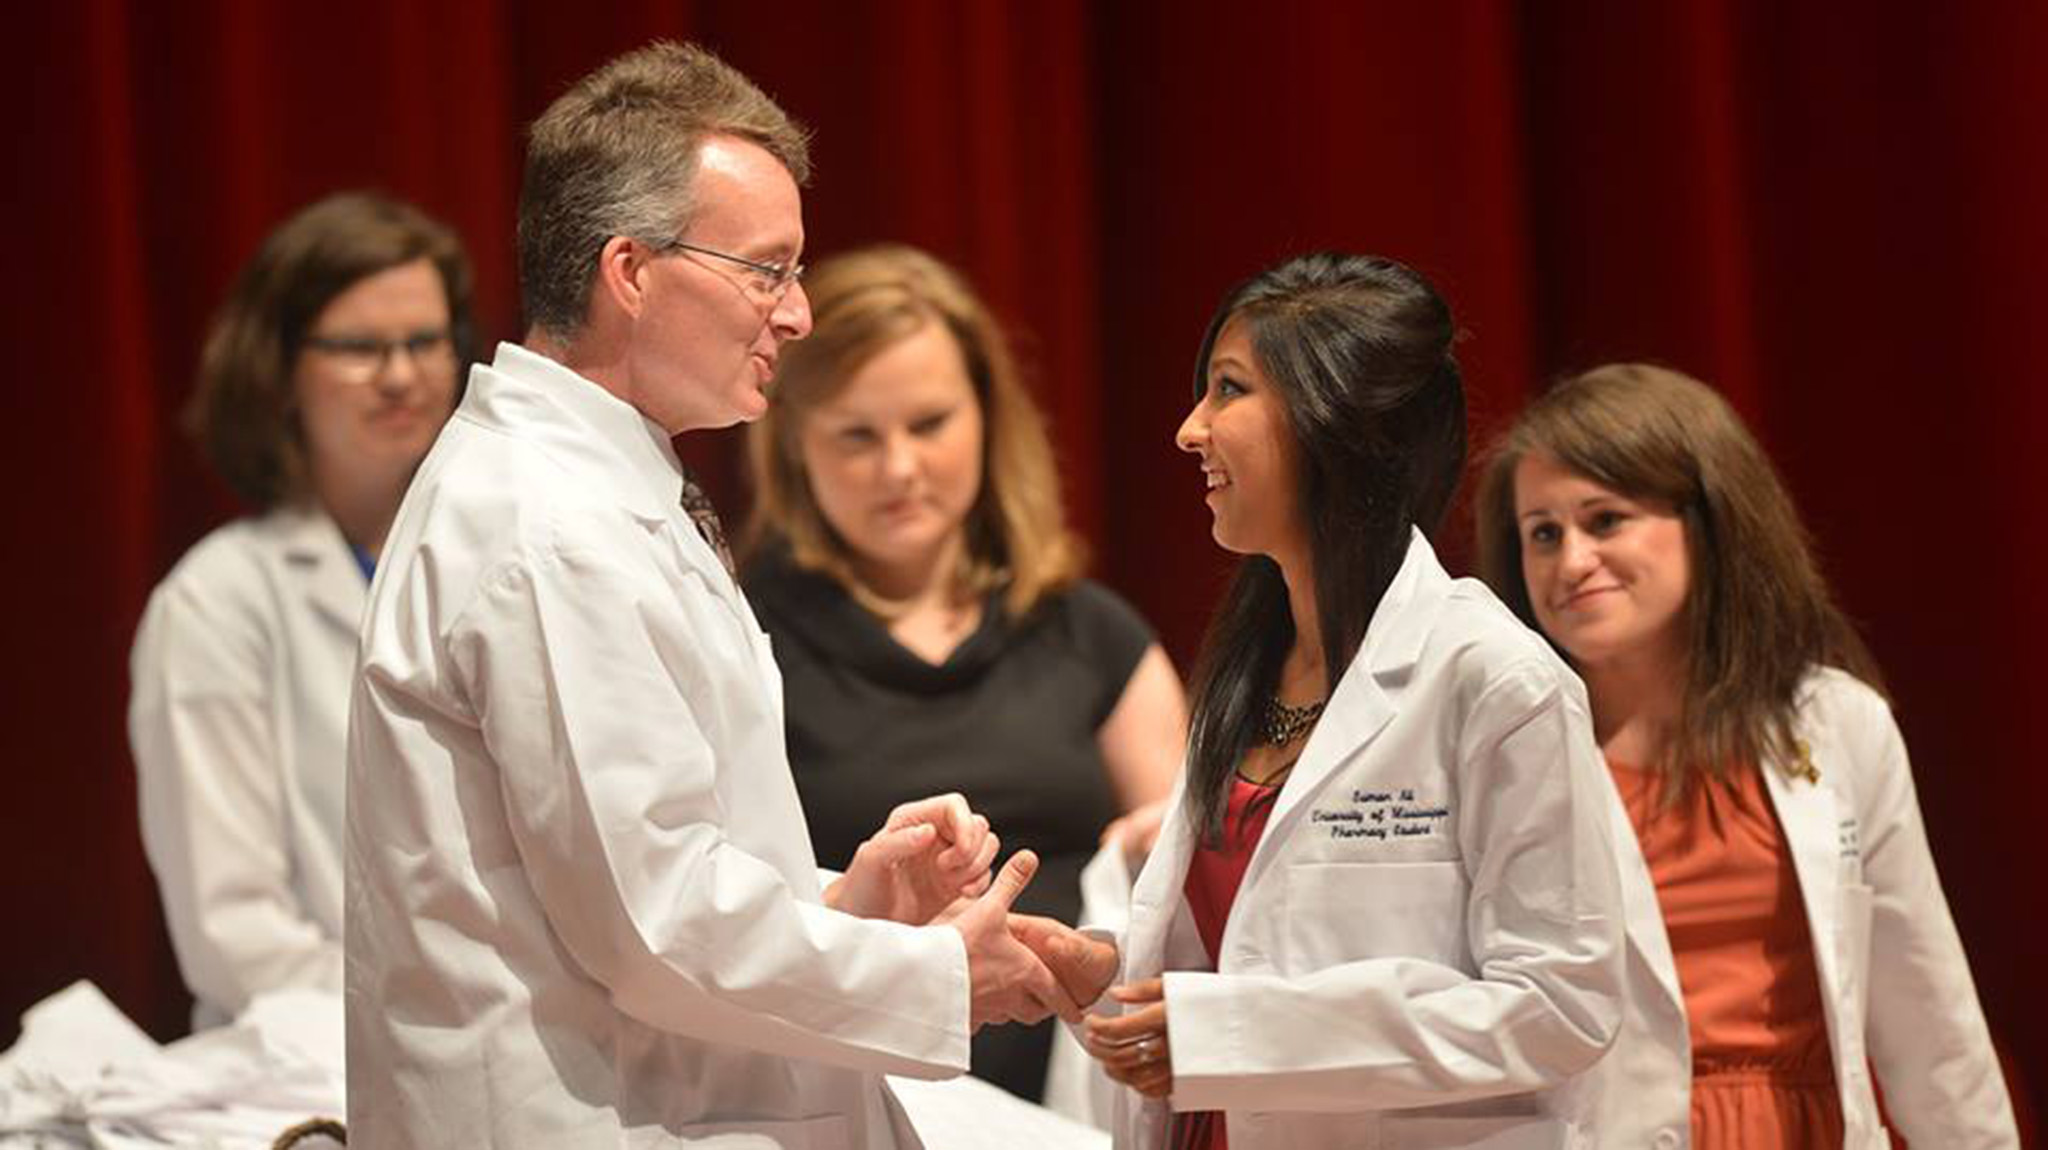 Incoming Pharmacy Students Honored at White Coat Ceremony - Ole ...